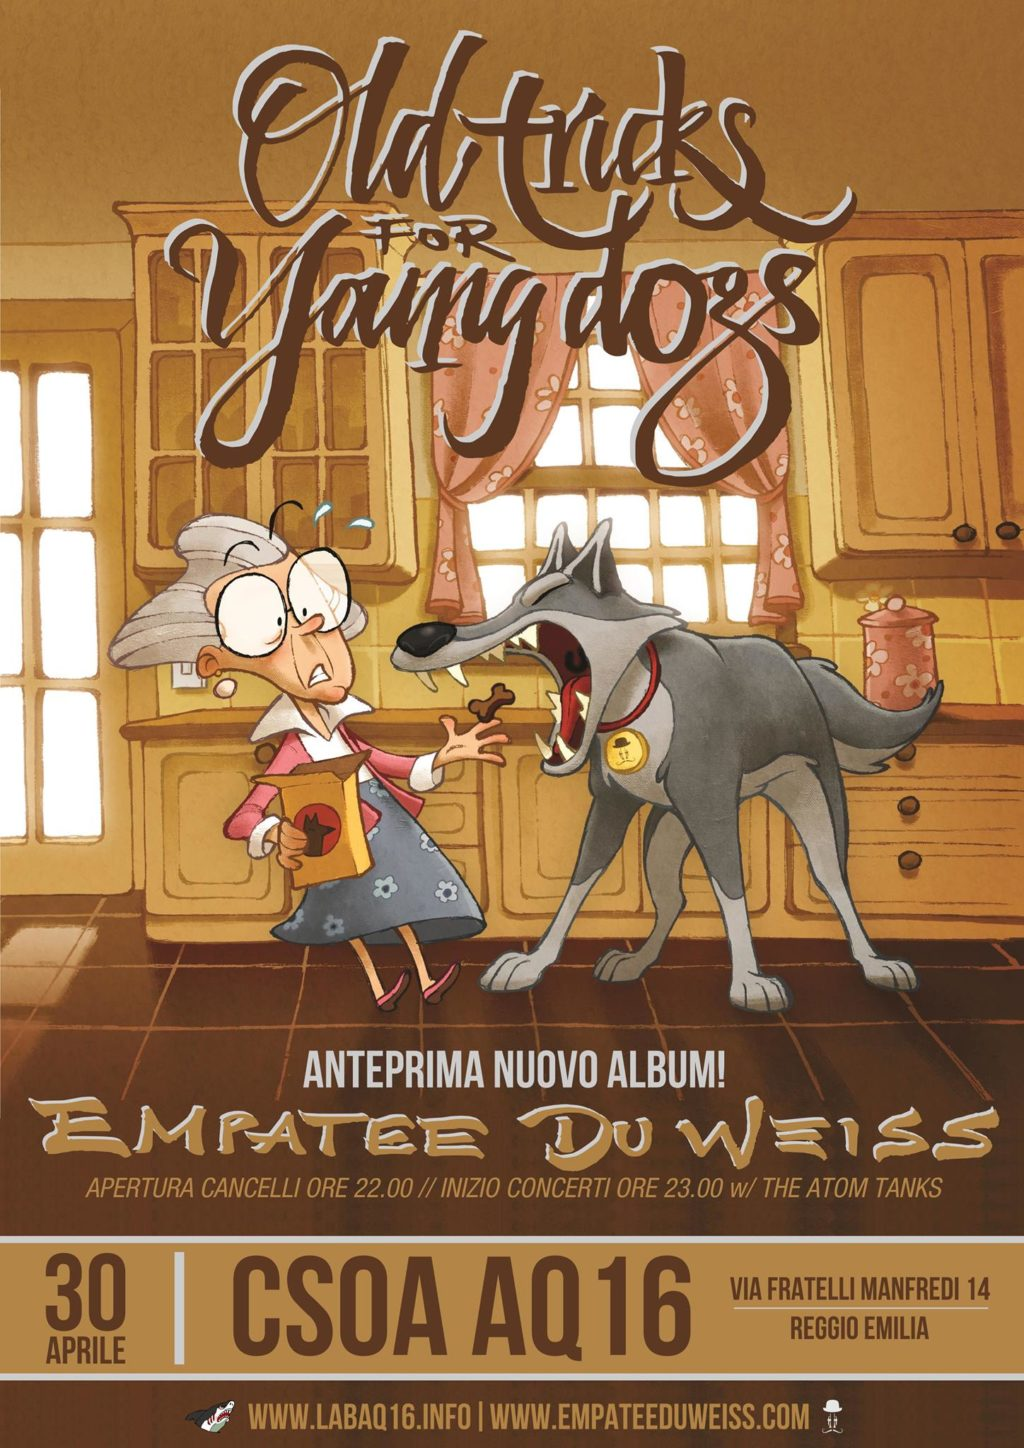 Old trick for young dogs - preview del nuovo album